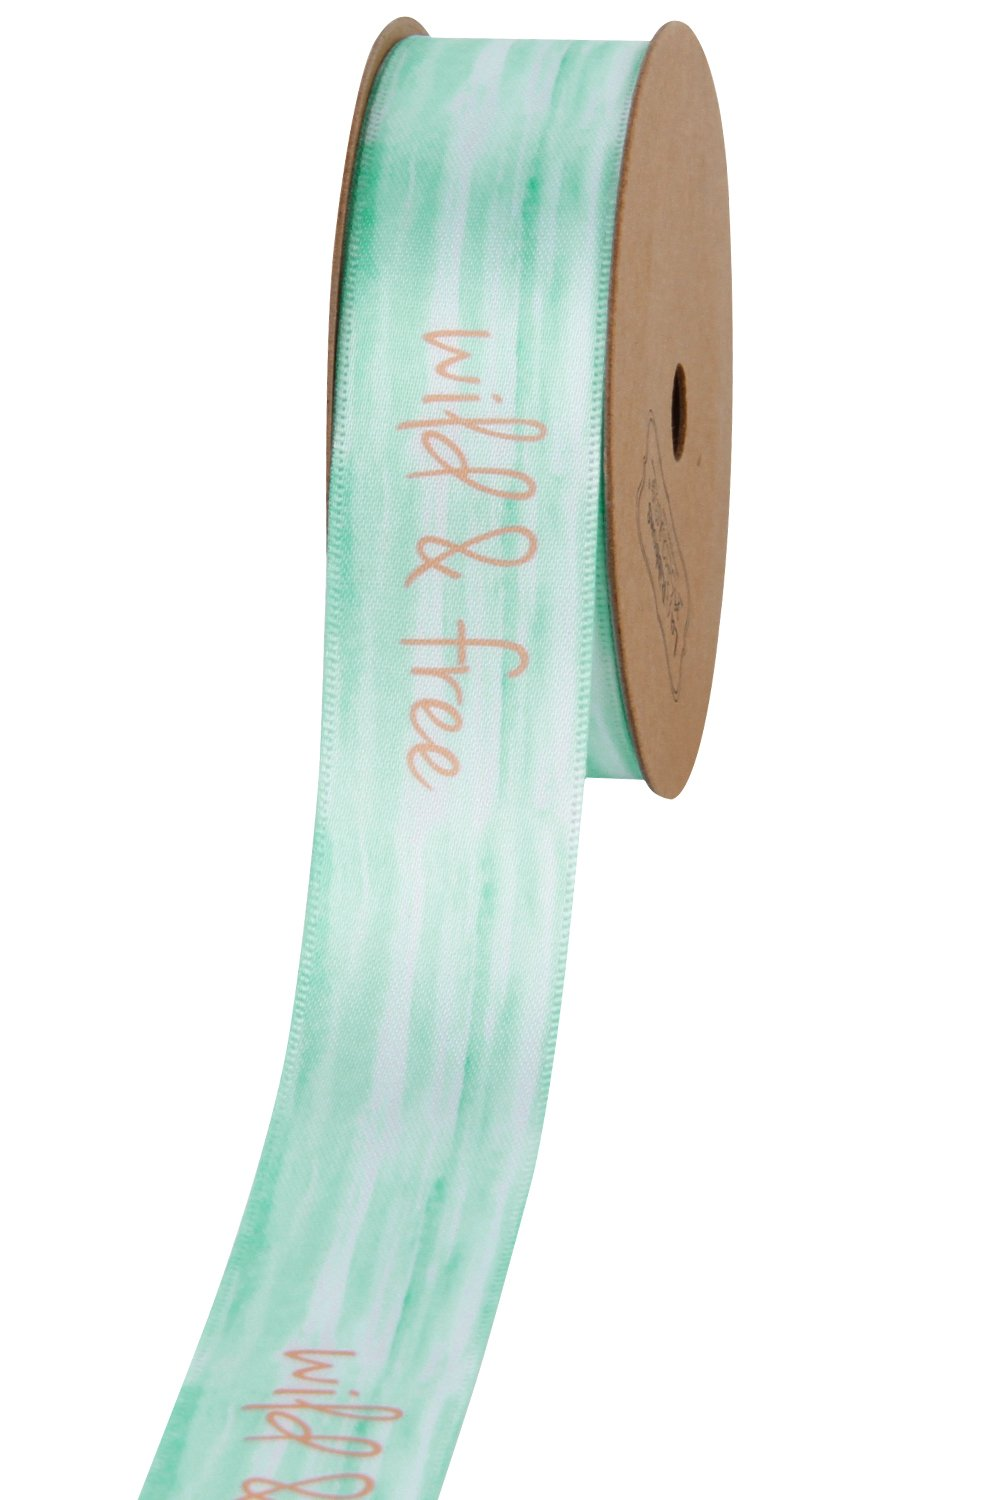 LaRibbons Solid Color Satin Ribbon Asst #2-10 Colors 3//8 X 5 Yard Each Total 50 Yds Per Package